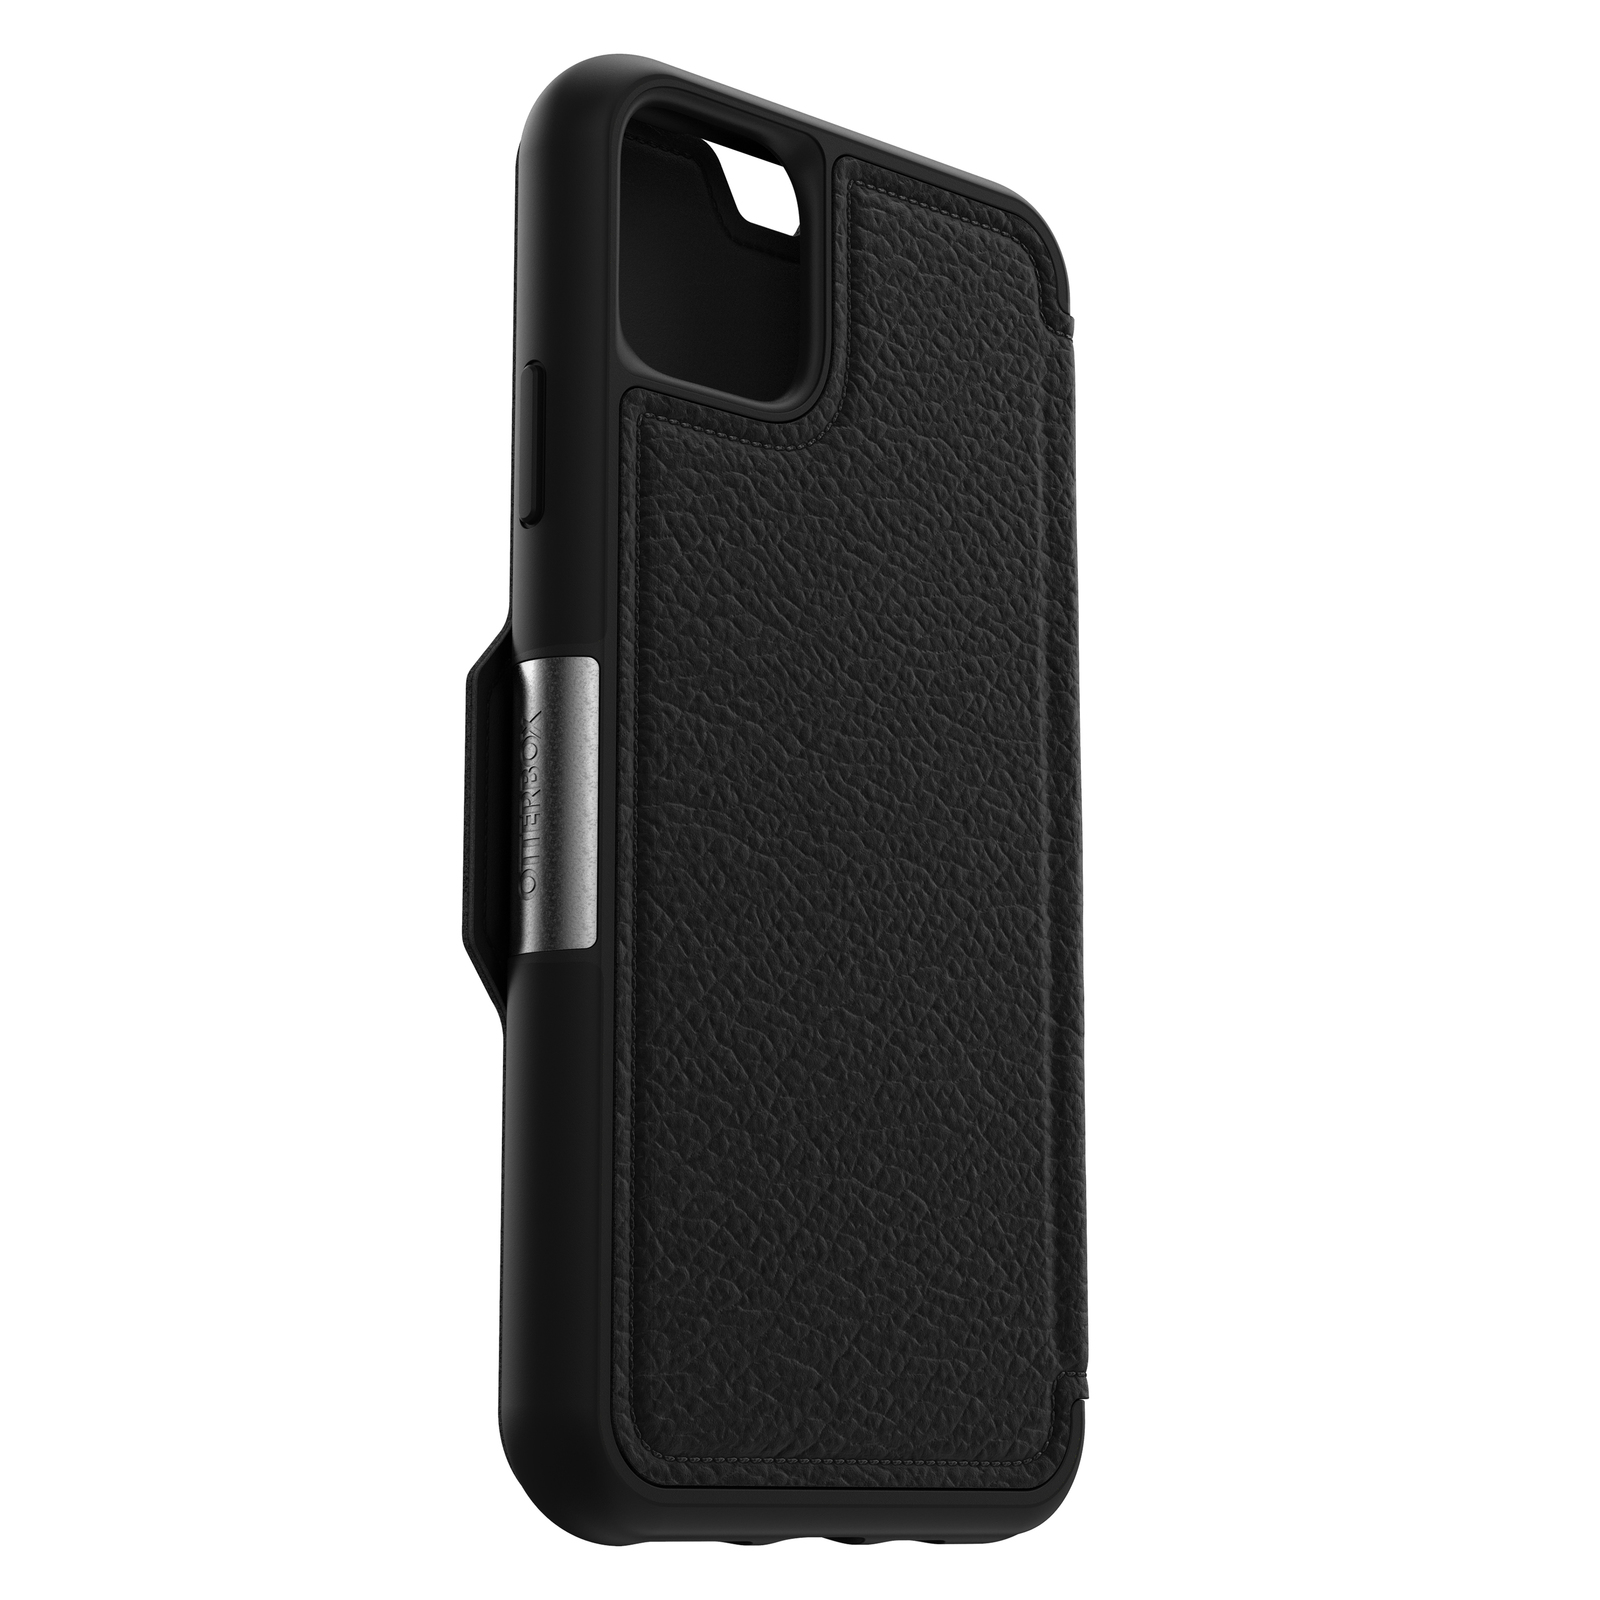 Otterbox: Strada for iPhone 11 Pro Max - Shadow image